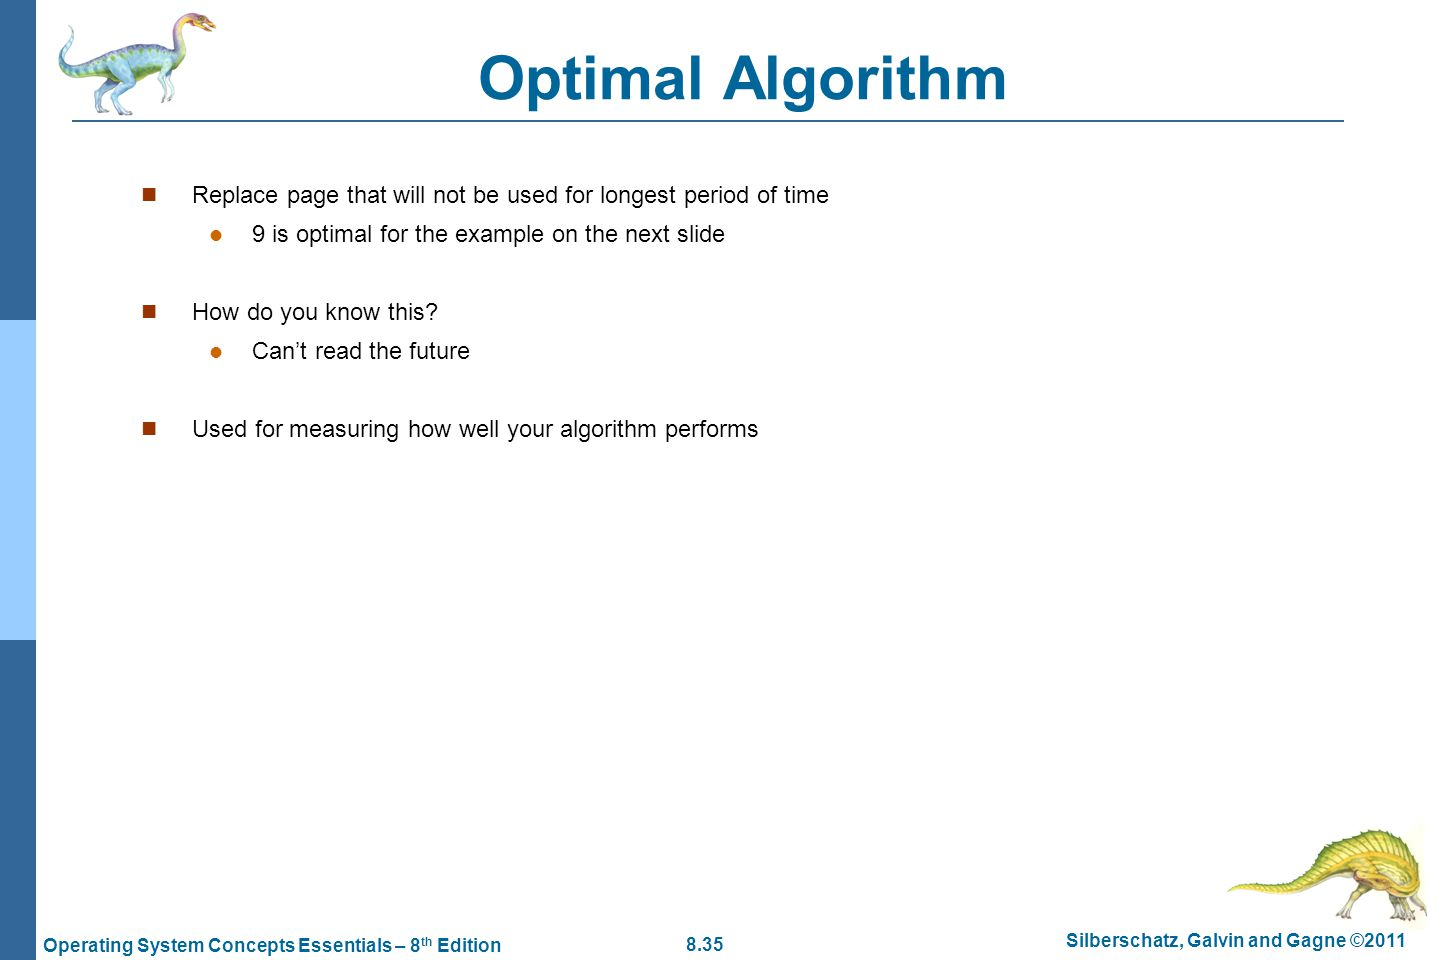 Optimal Algorithm Replace page that will not be used for longest period of time. 9 is optimal for the example on the next slide.